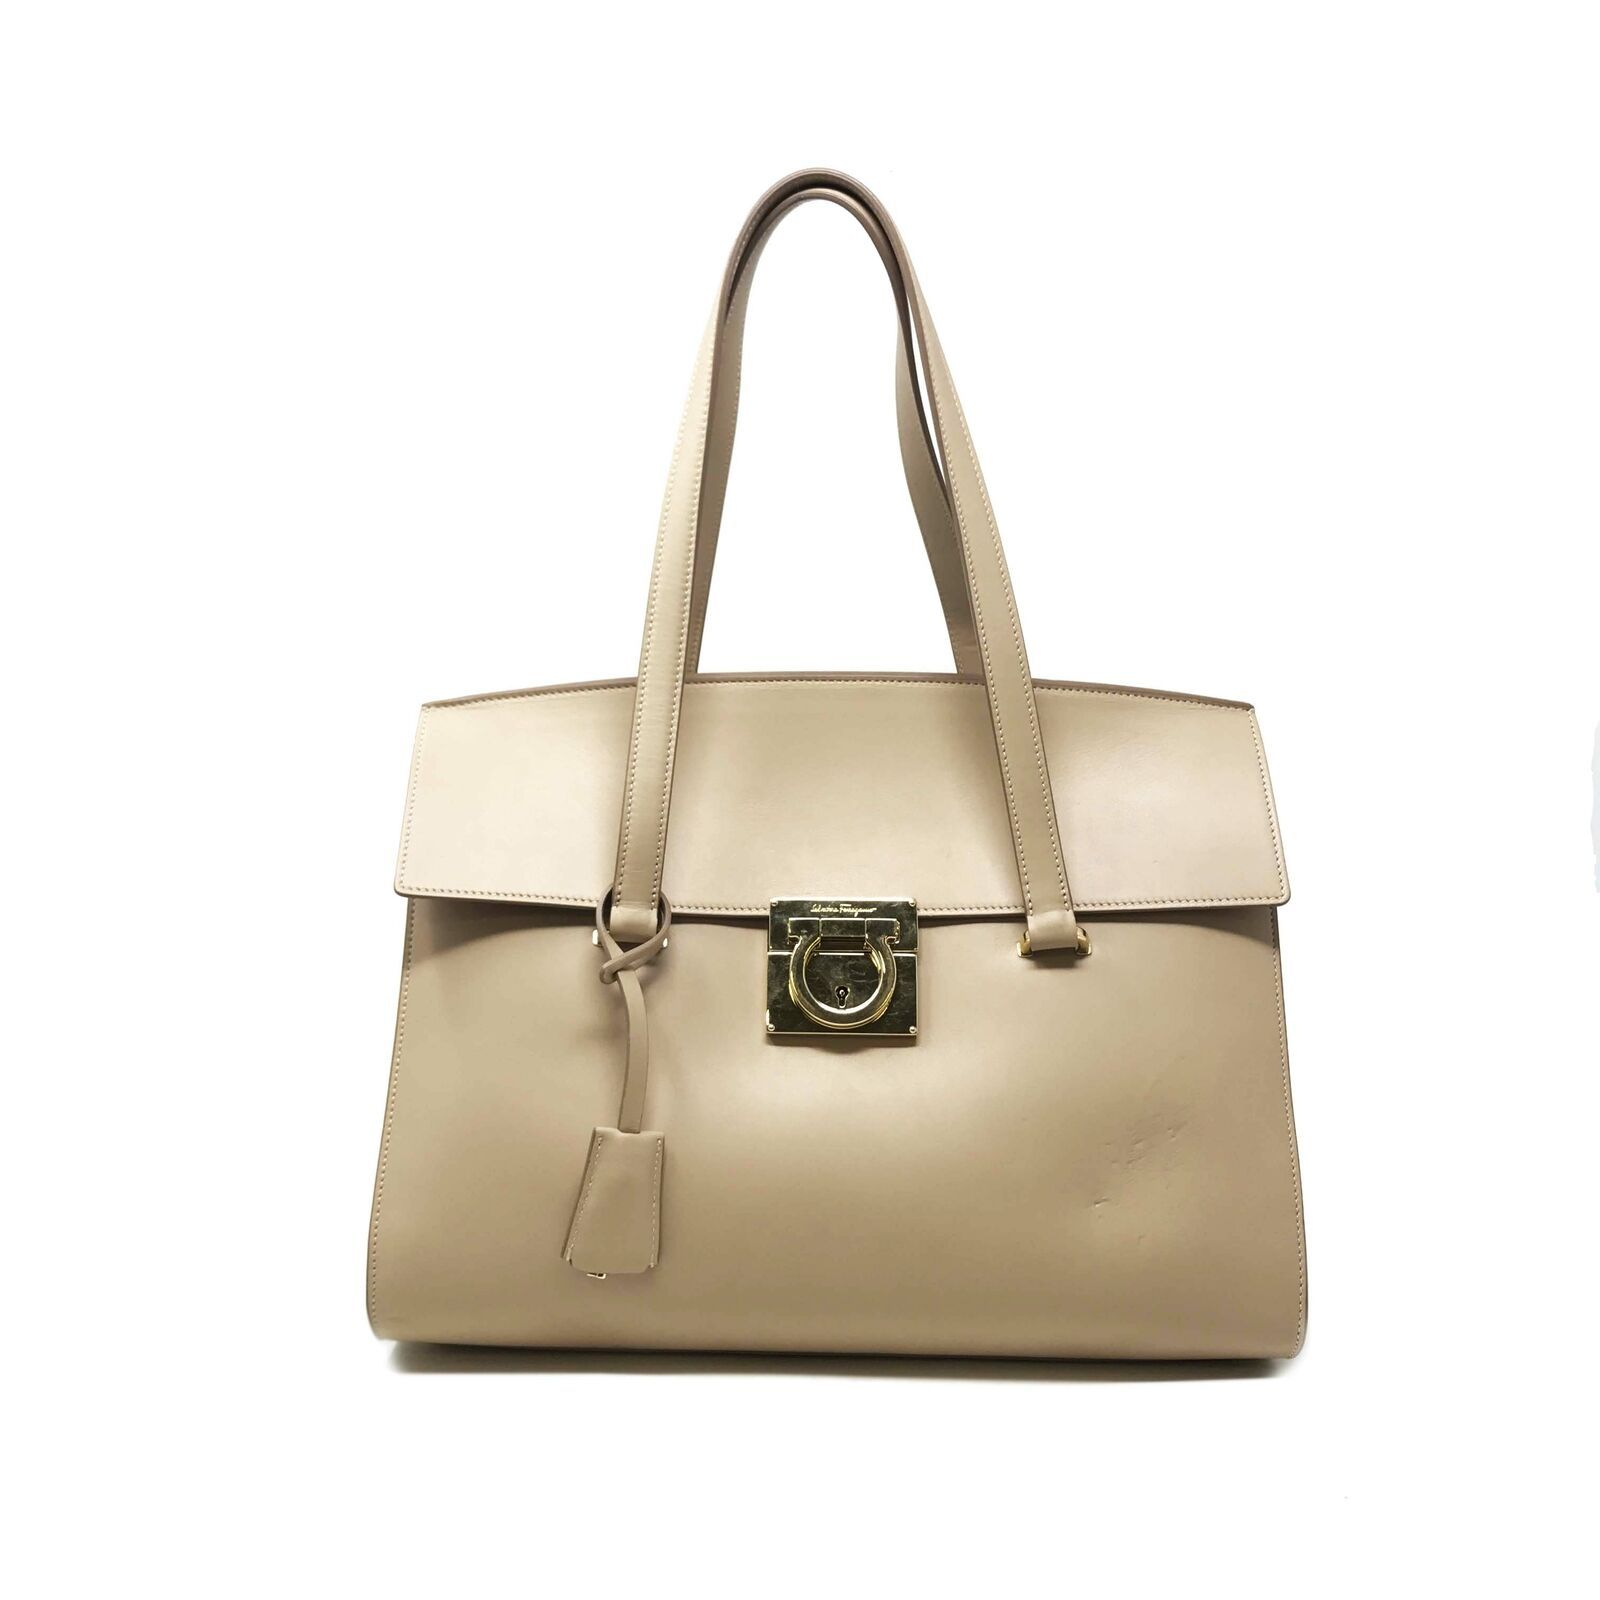 Primary image for Salvatore Ferragamo 21F818 'MARA' Leather Shoulder Women's Bag